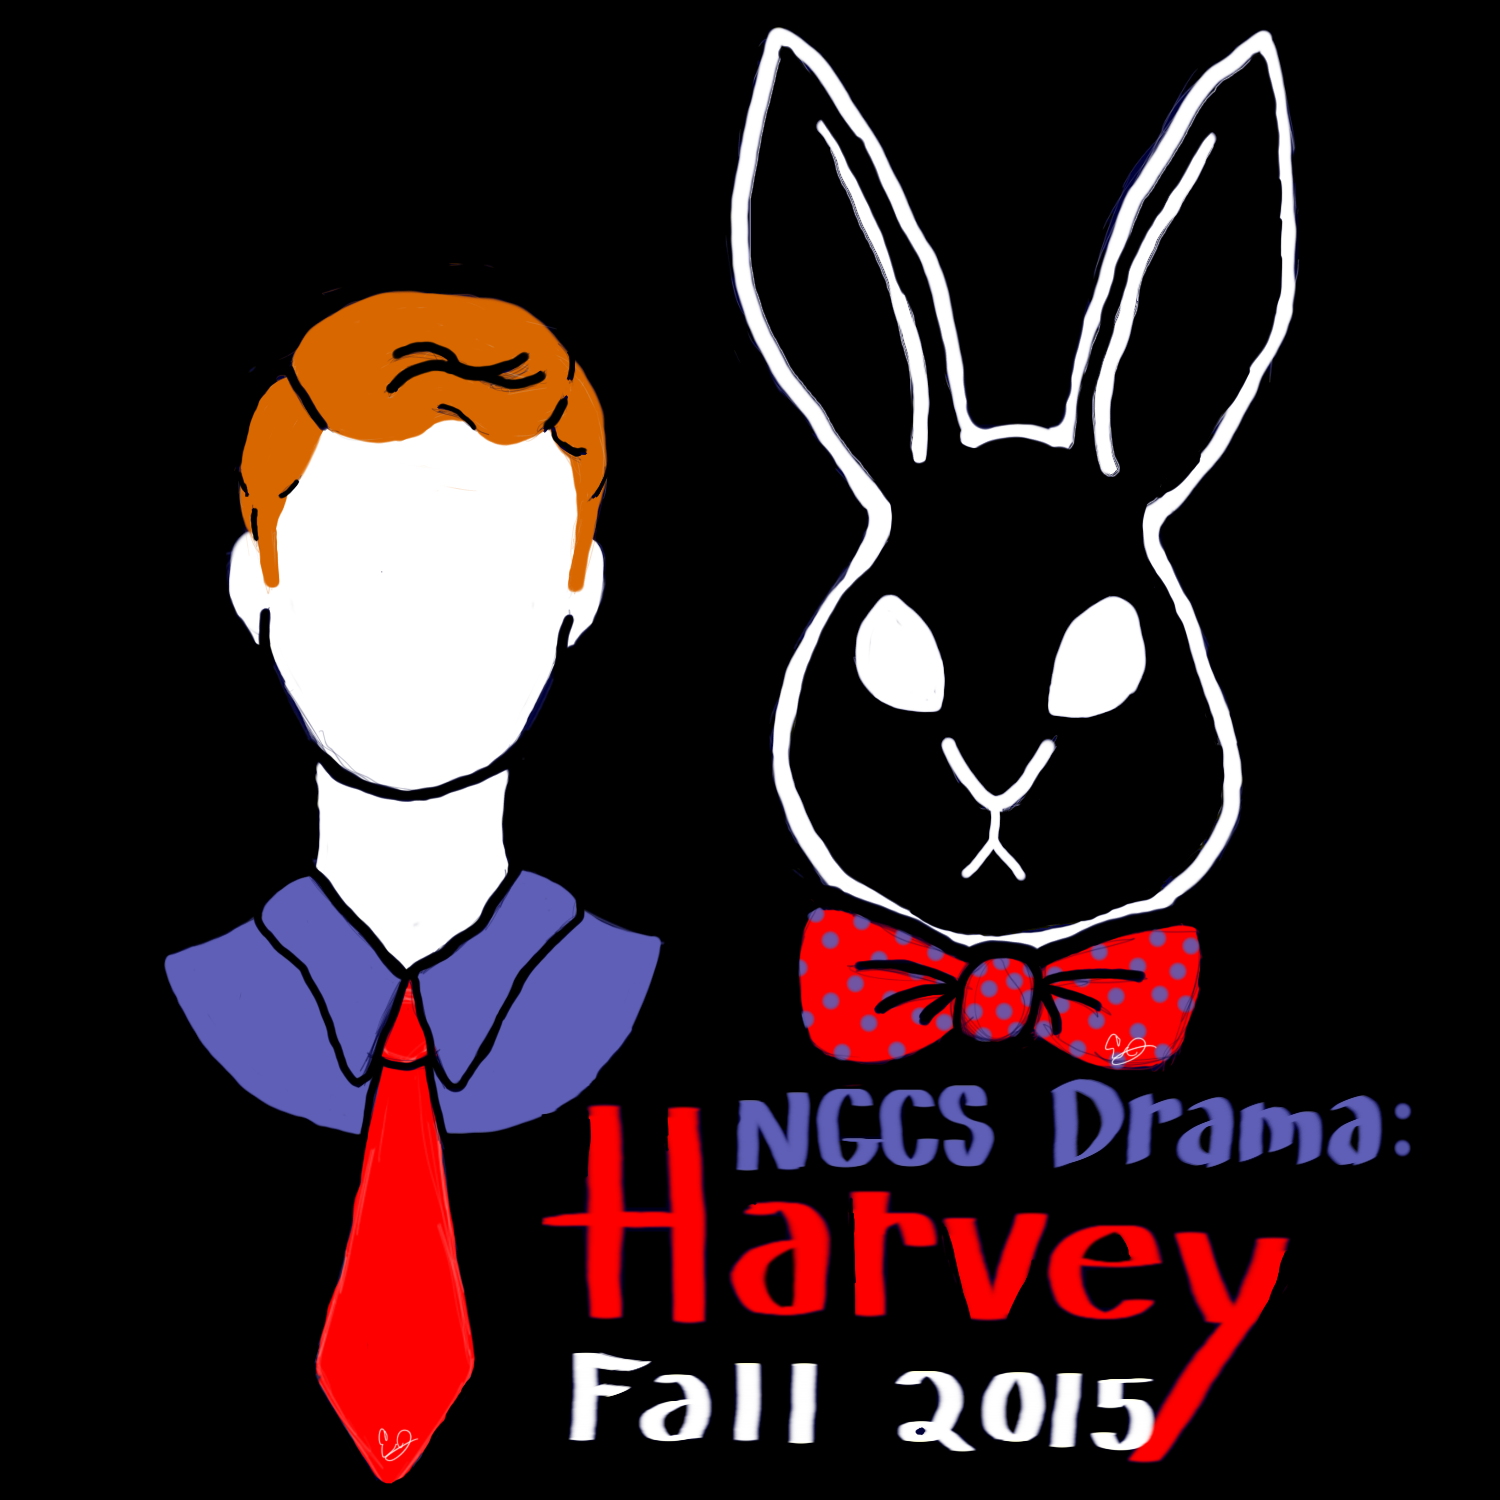 Harvey tshirt design by Jonesydragon